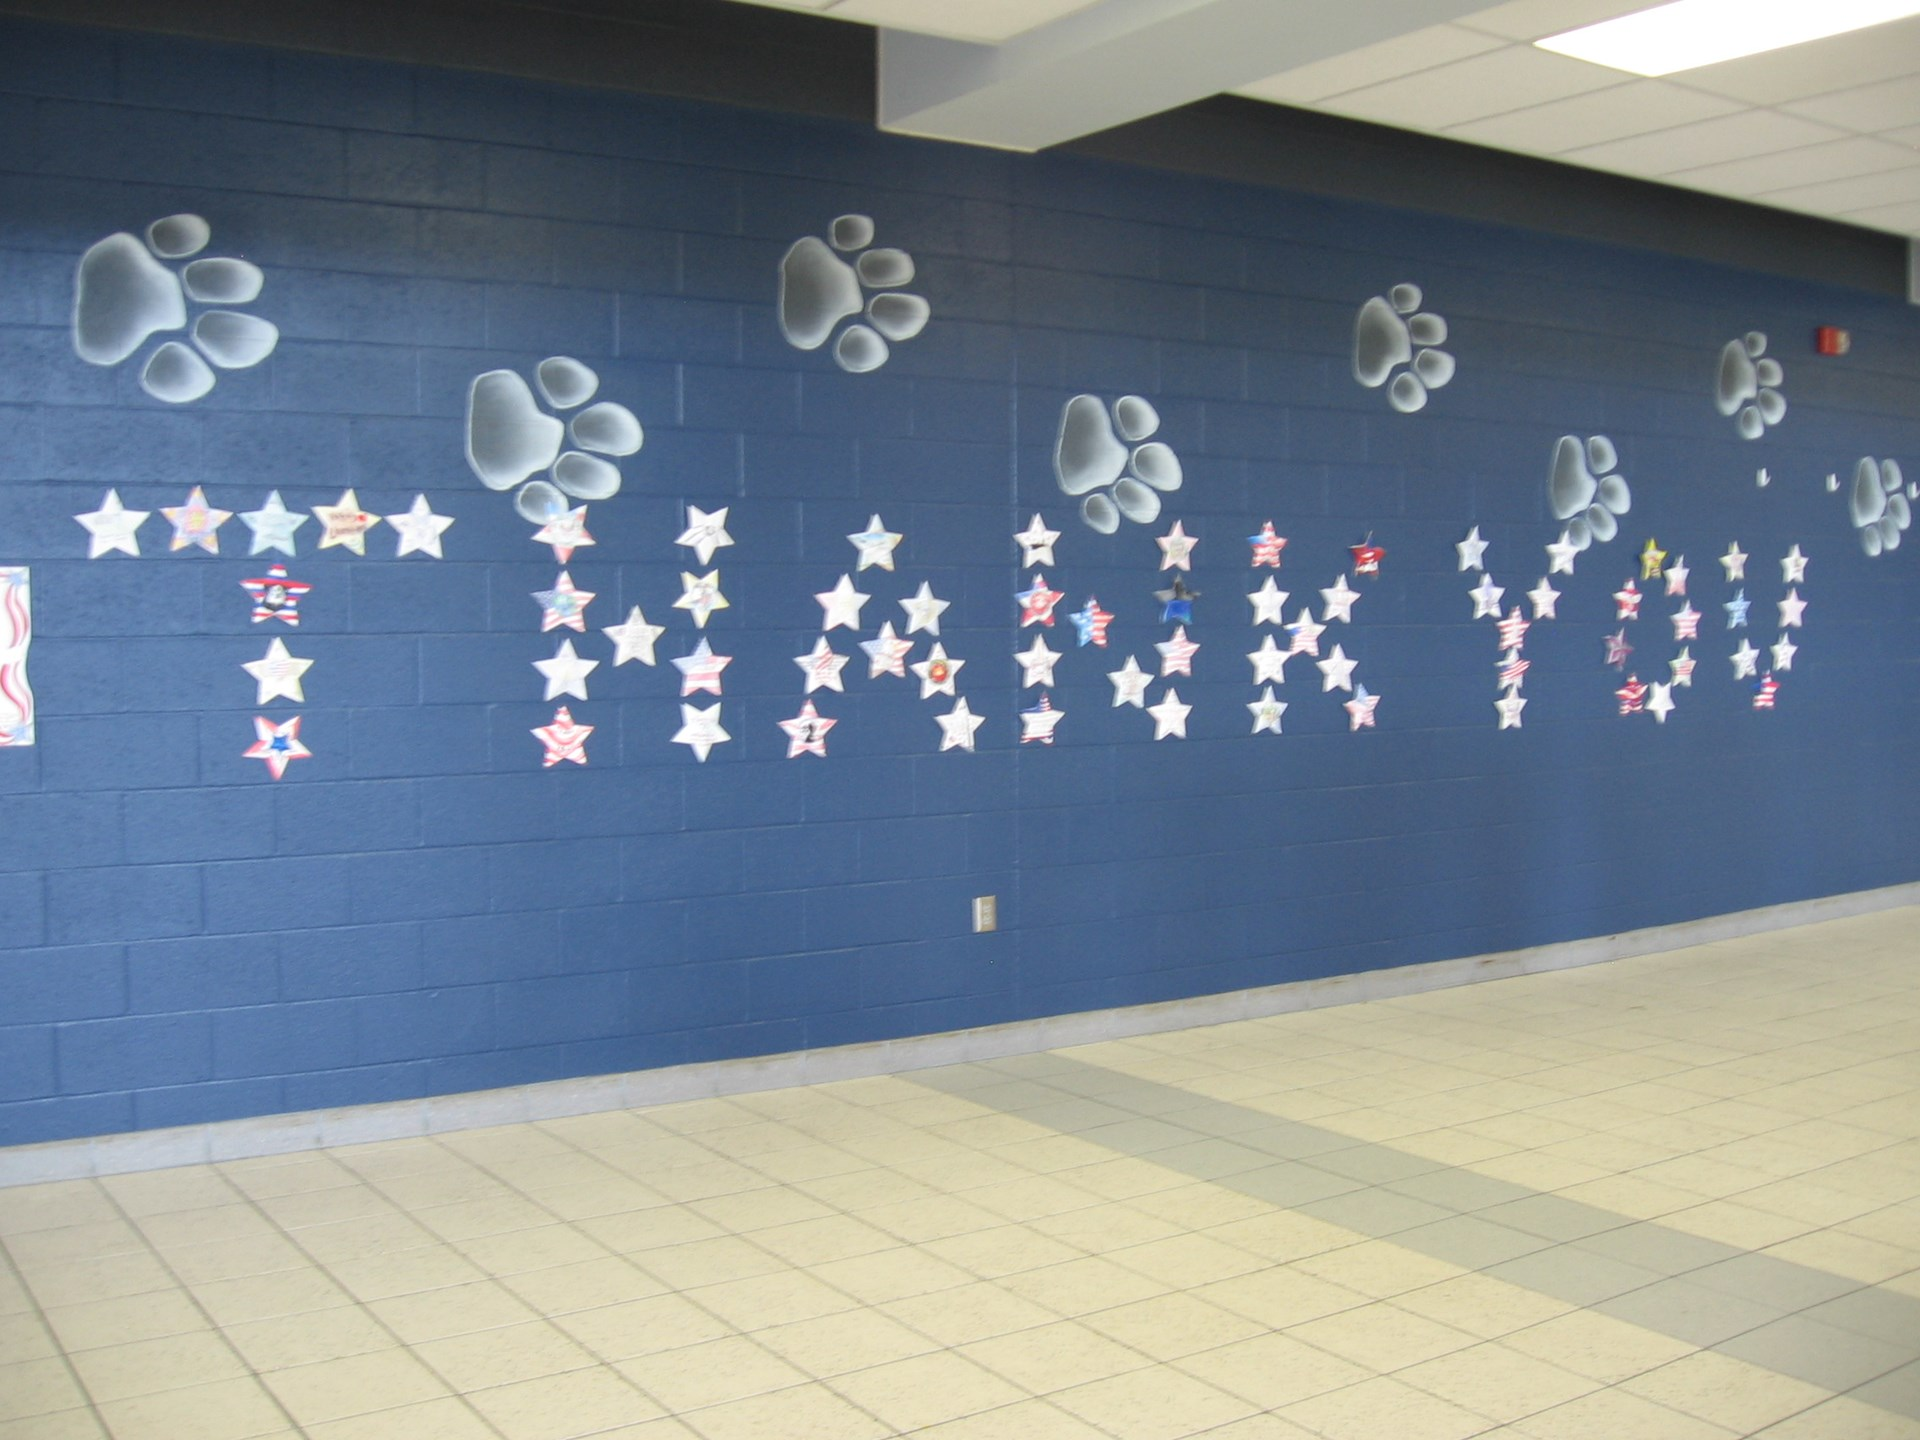 Word thank you made of stars on a wall